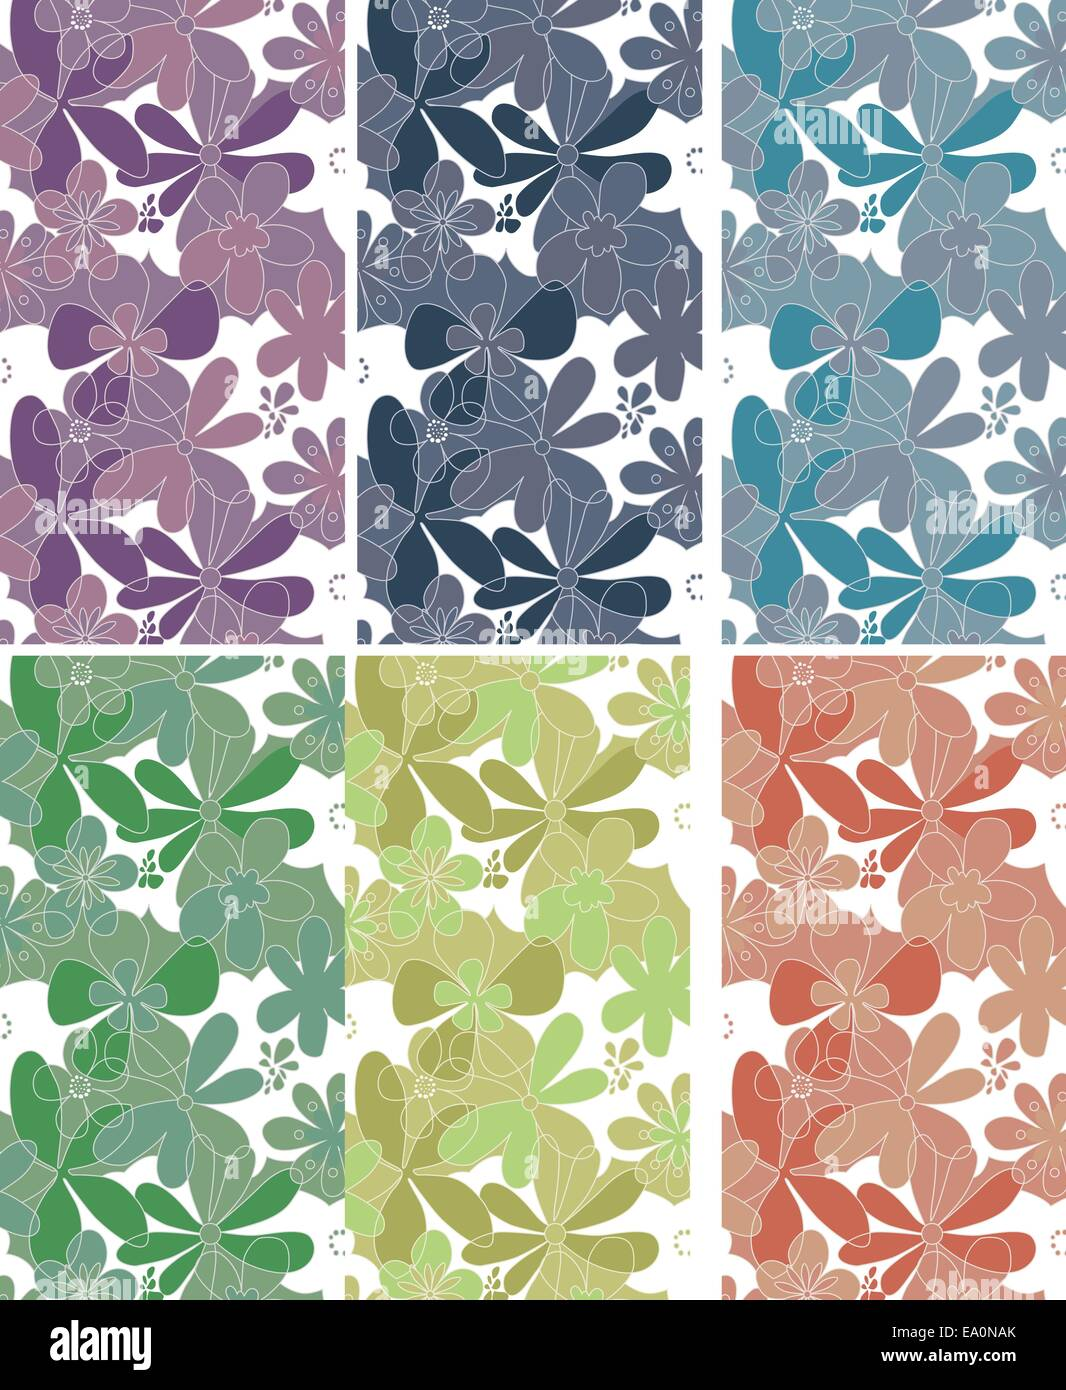 vector flourish wallpaper texture with various shades, eps 8 file, not tile-able - Stock Image